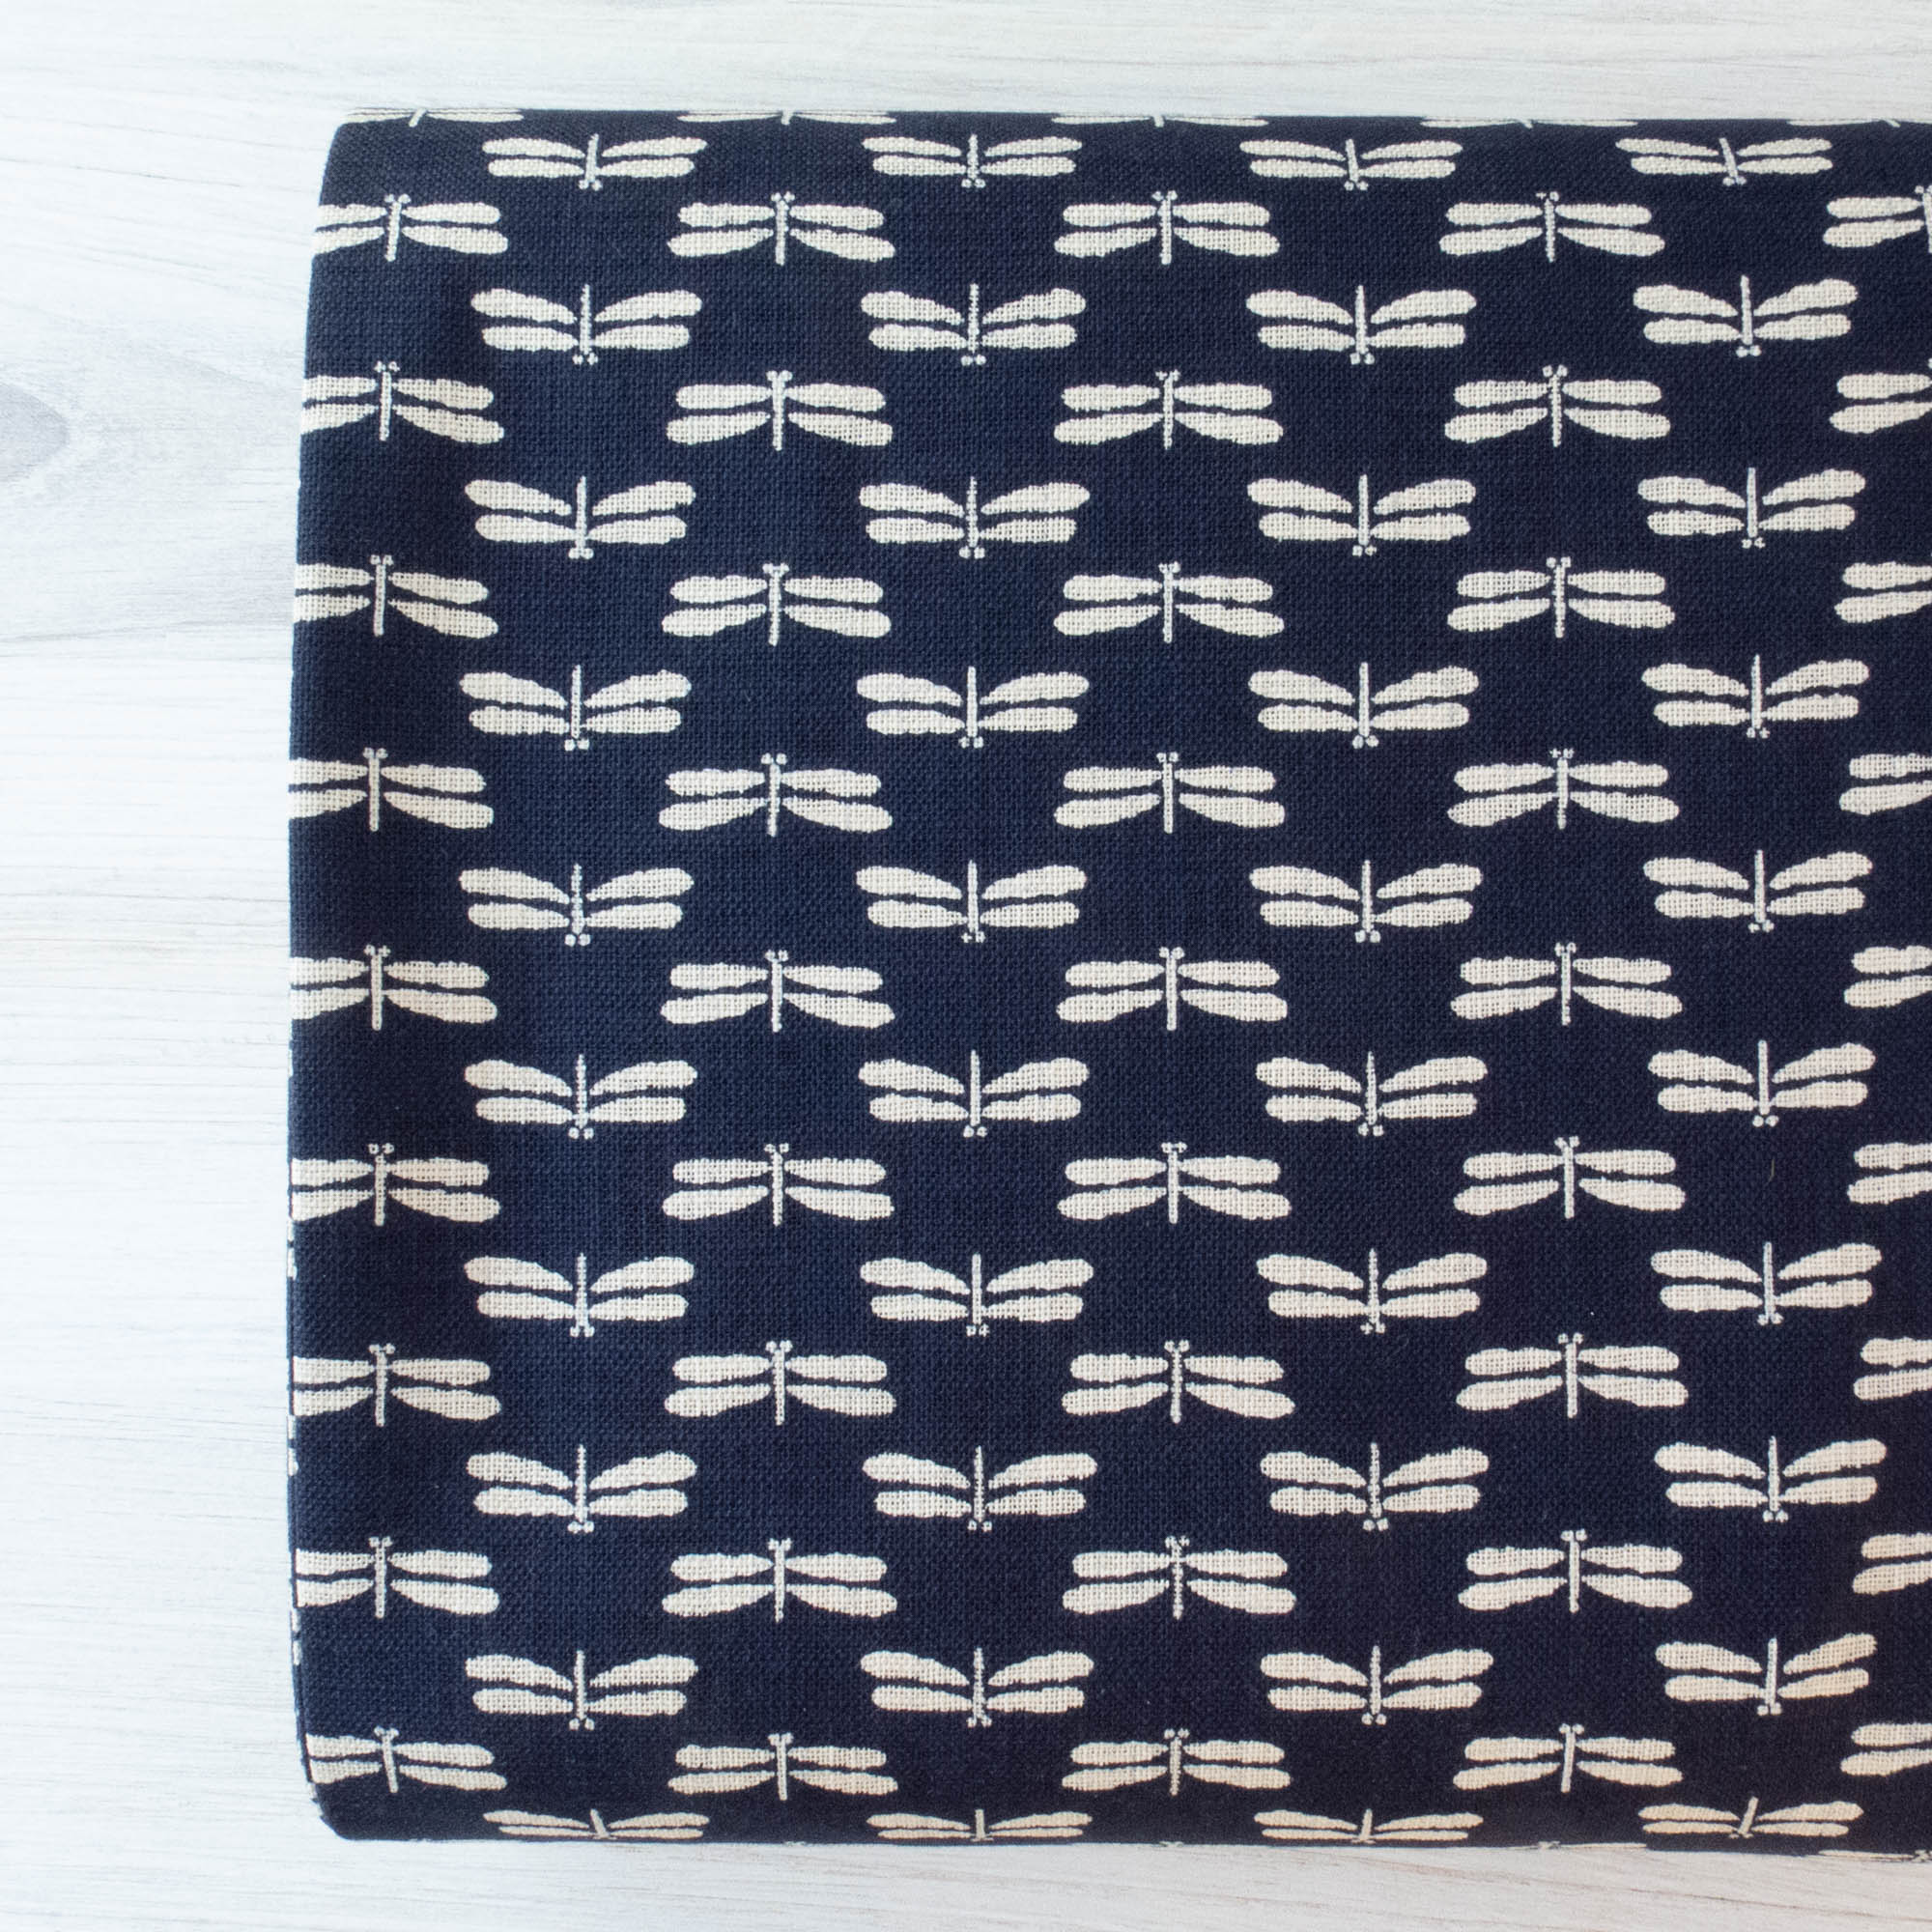 Sevenberry Nara Homespun :: Dragonfly on Indigo Fabric - Snuggly Monkey